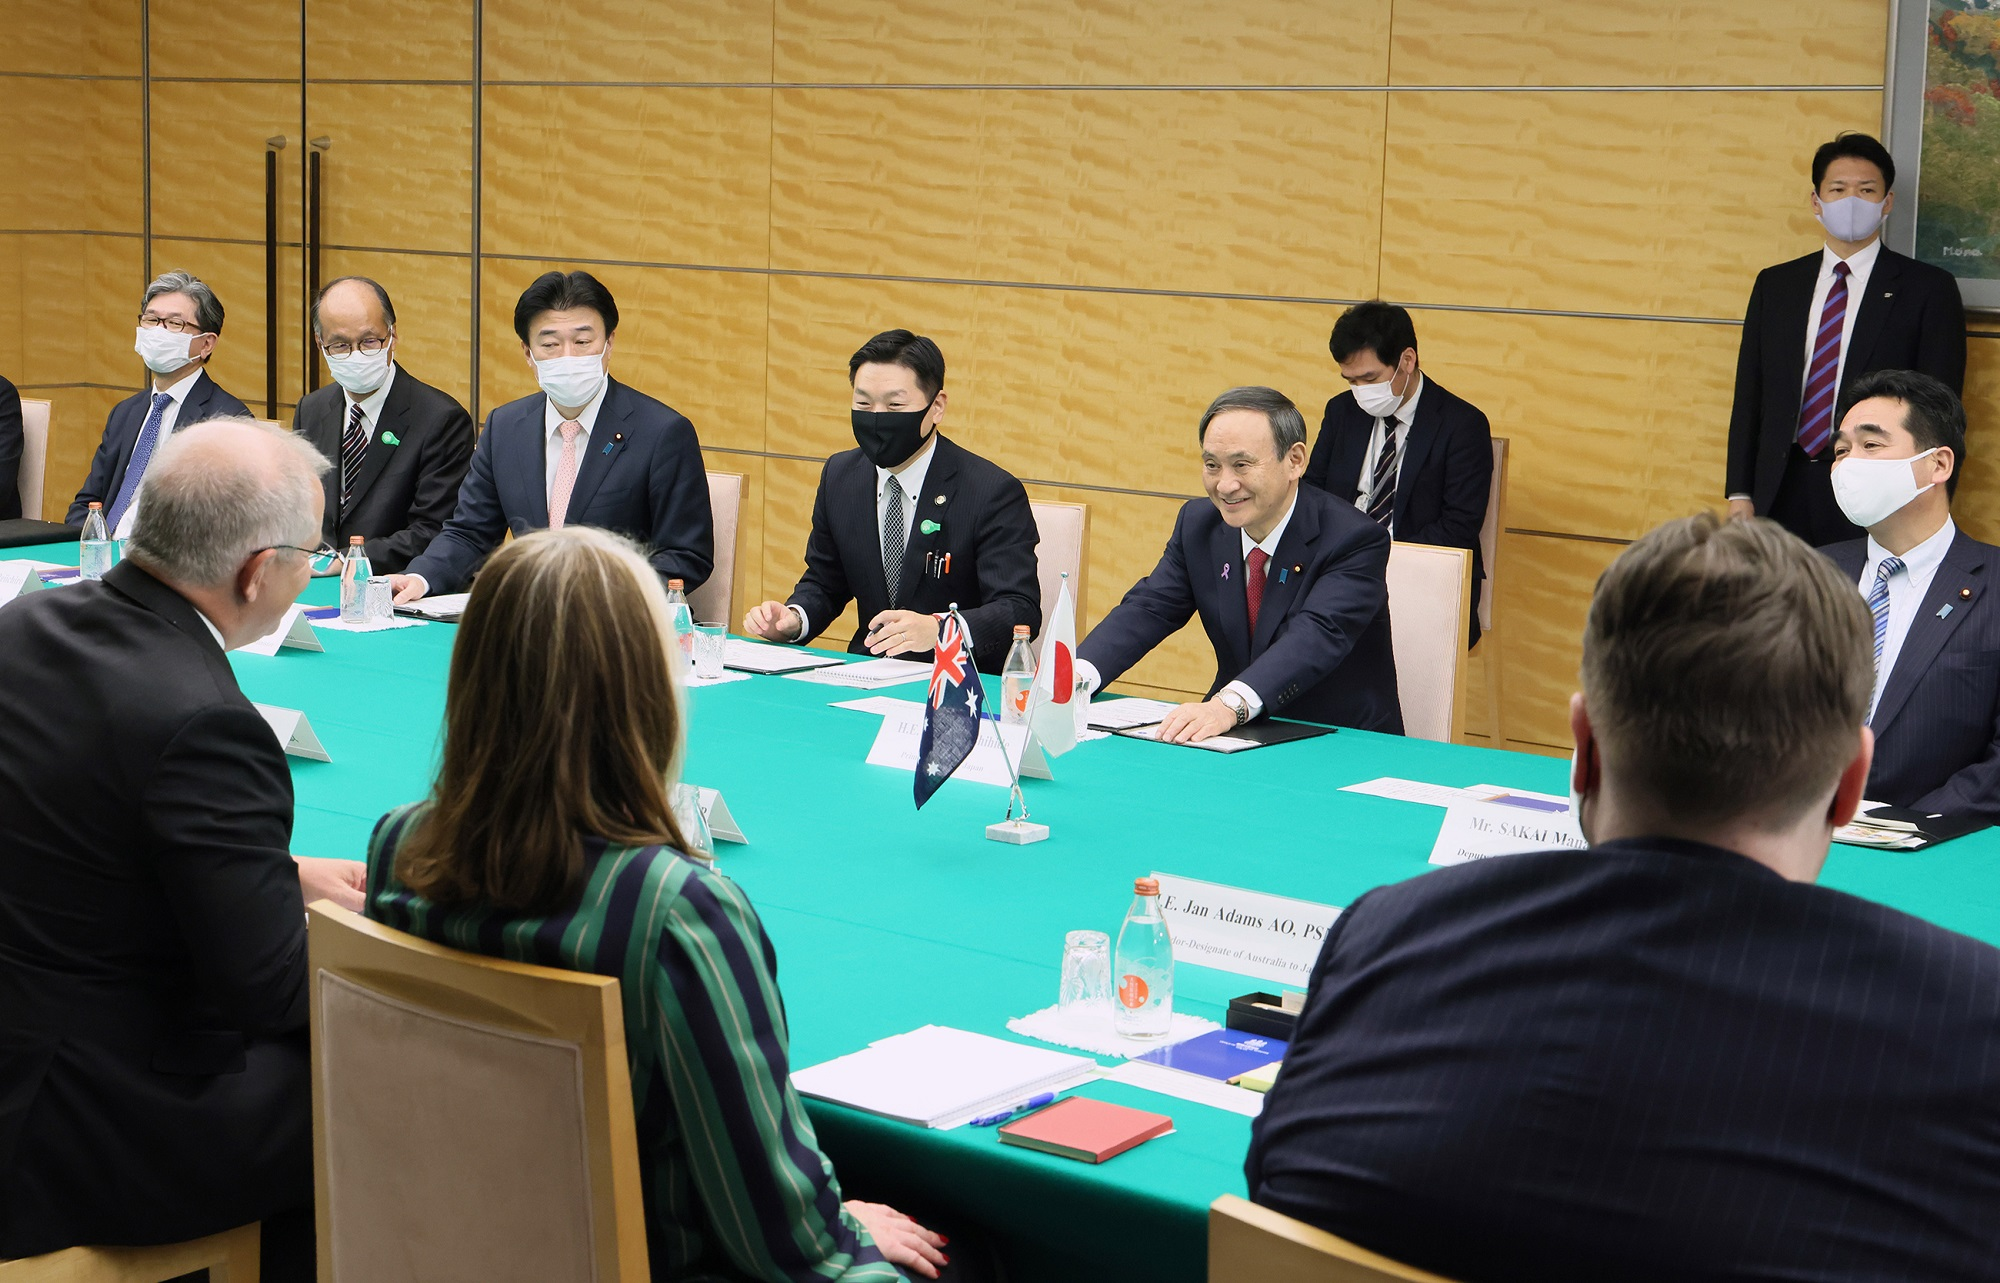 Photograph of the Japan-Australia Summit Meeting (3)